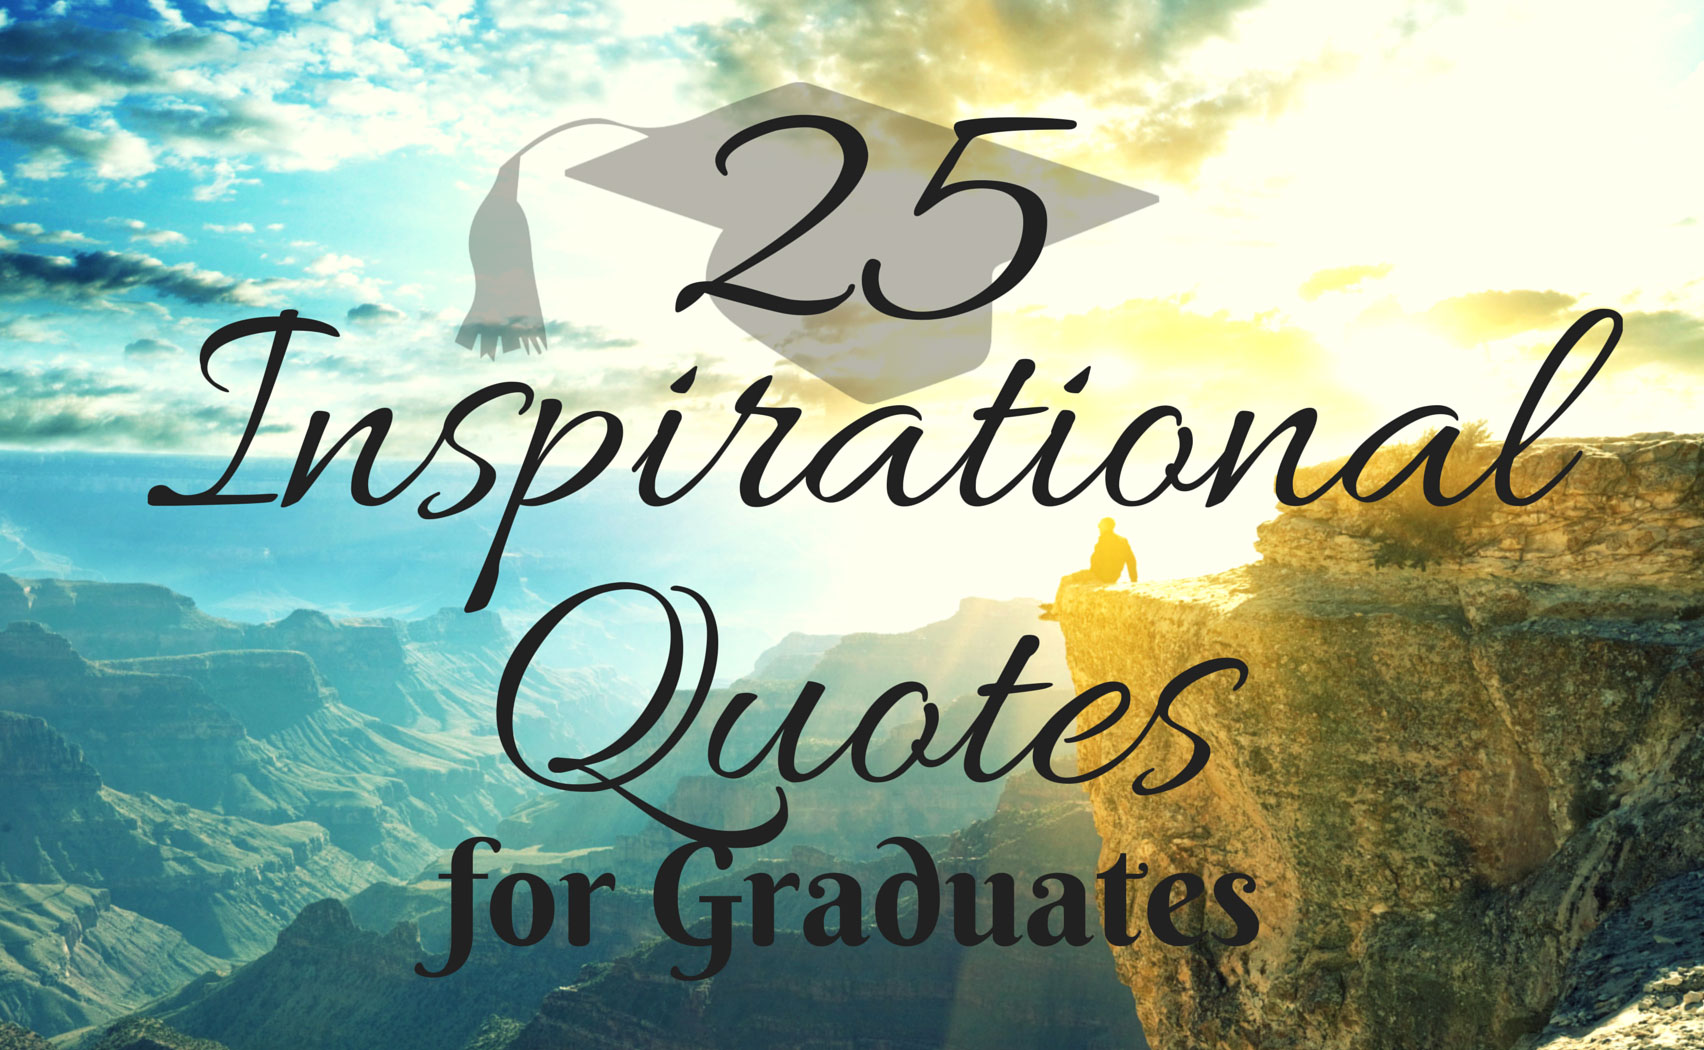 25 Inspirational Quotes for Graduates